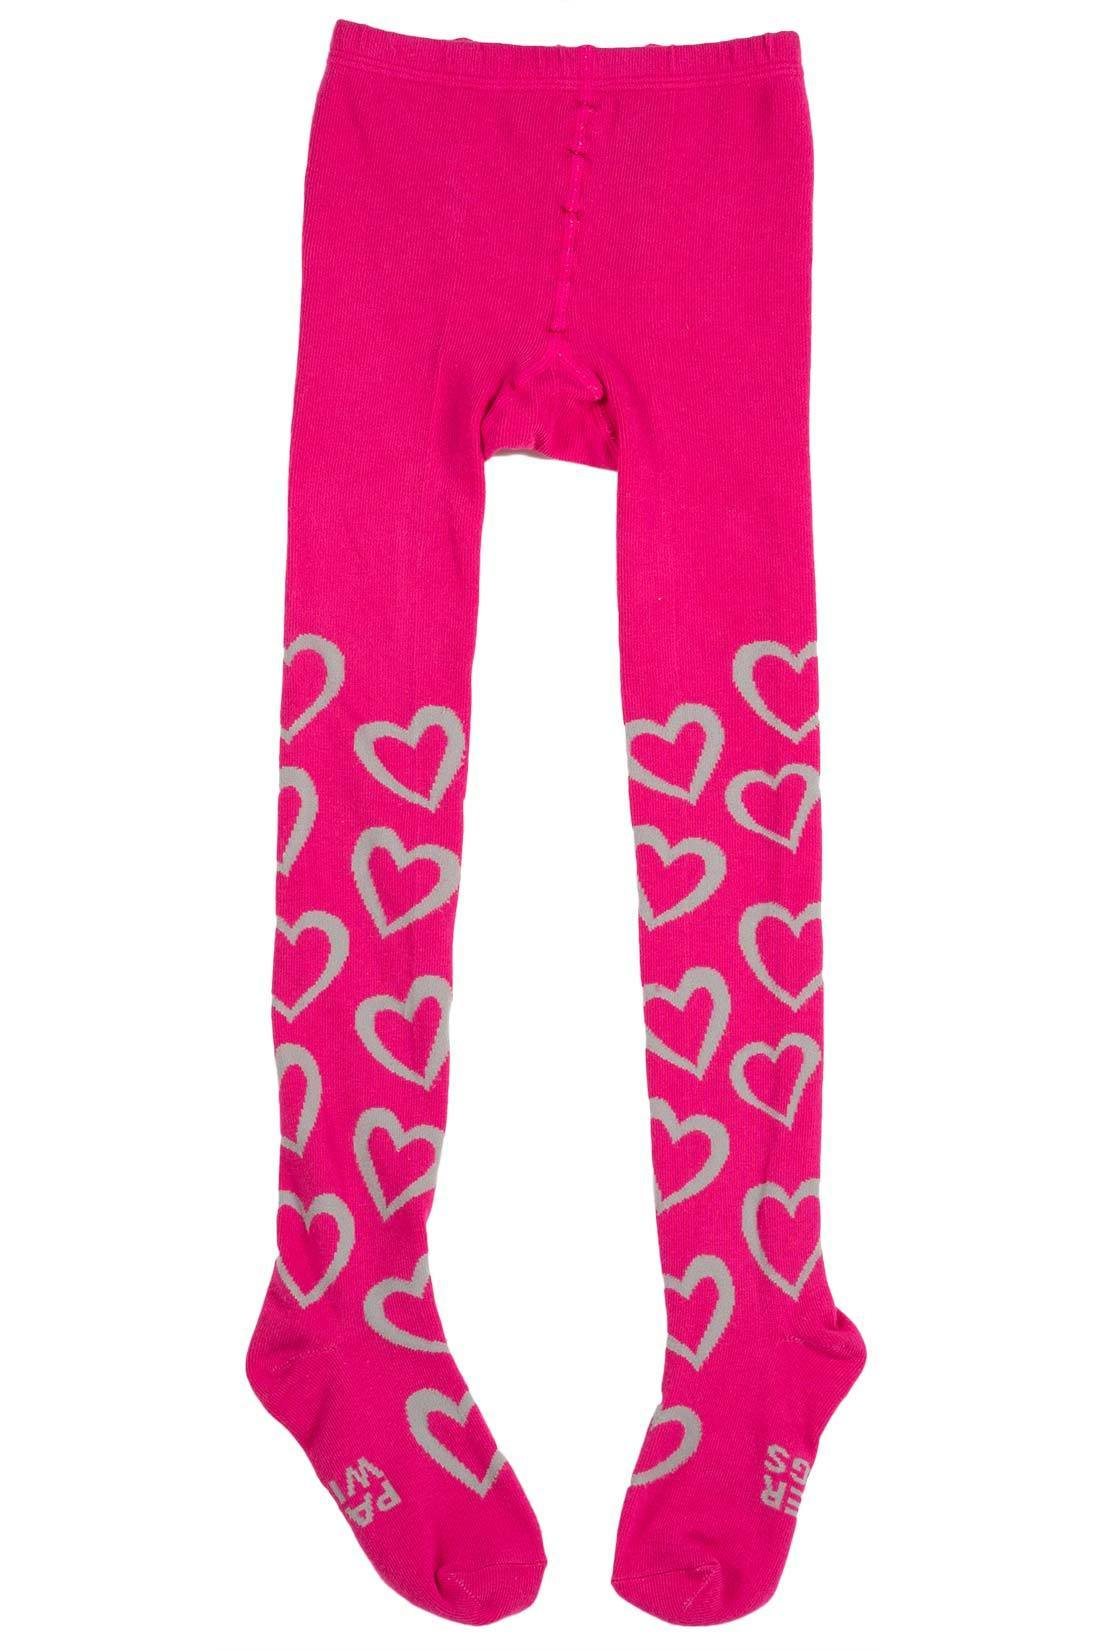 Paper Wings Tights - Hearts